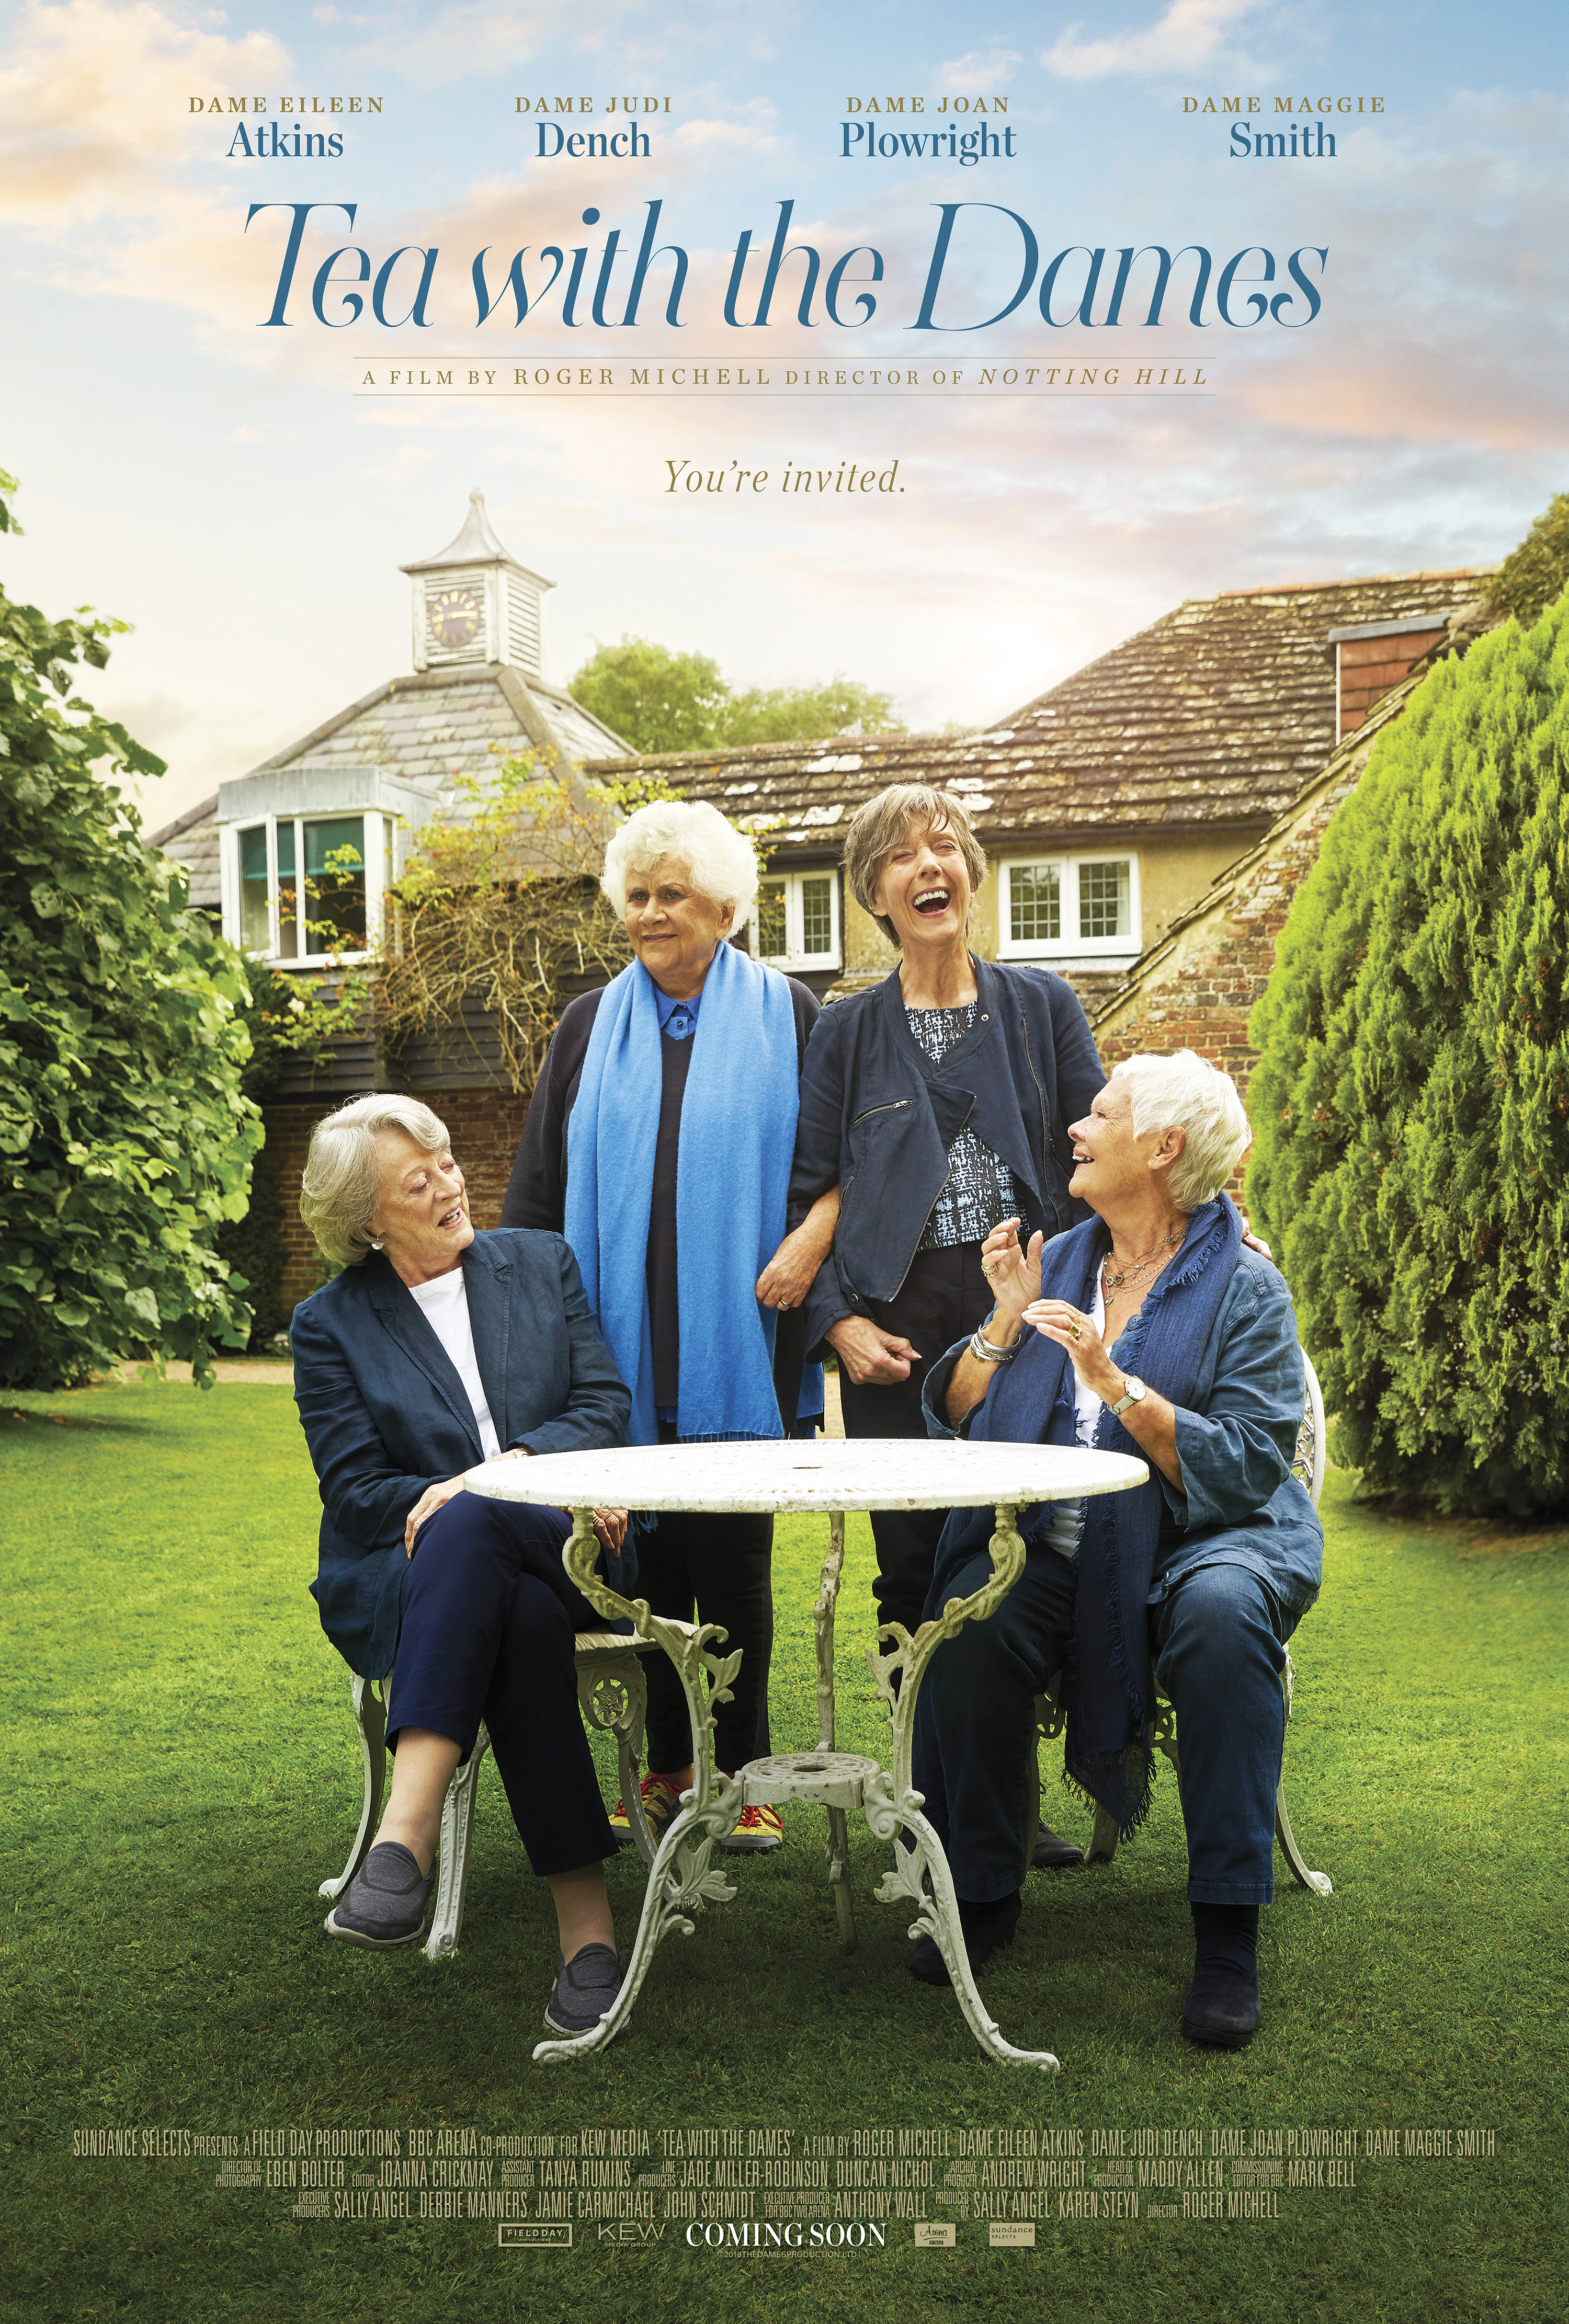 Movie Matinee: Tea with the Dames